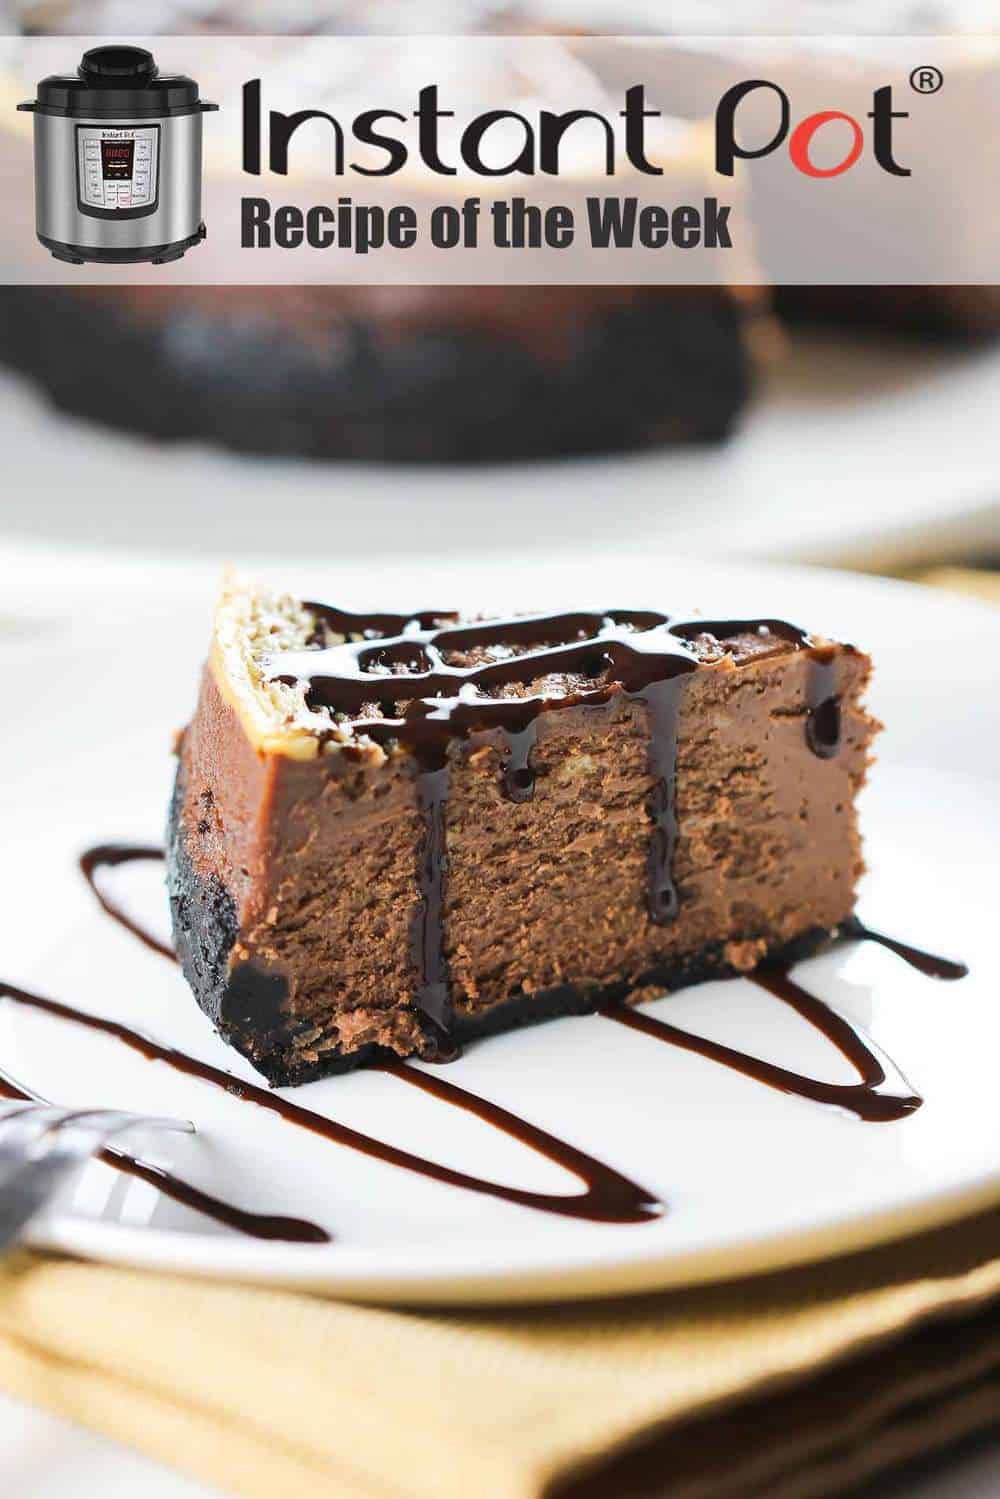 Instant Pot Chocolate Marble Cheesecake